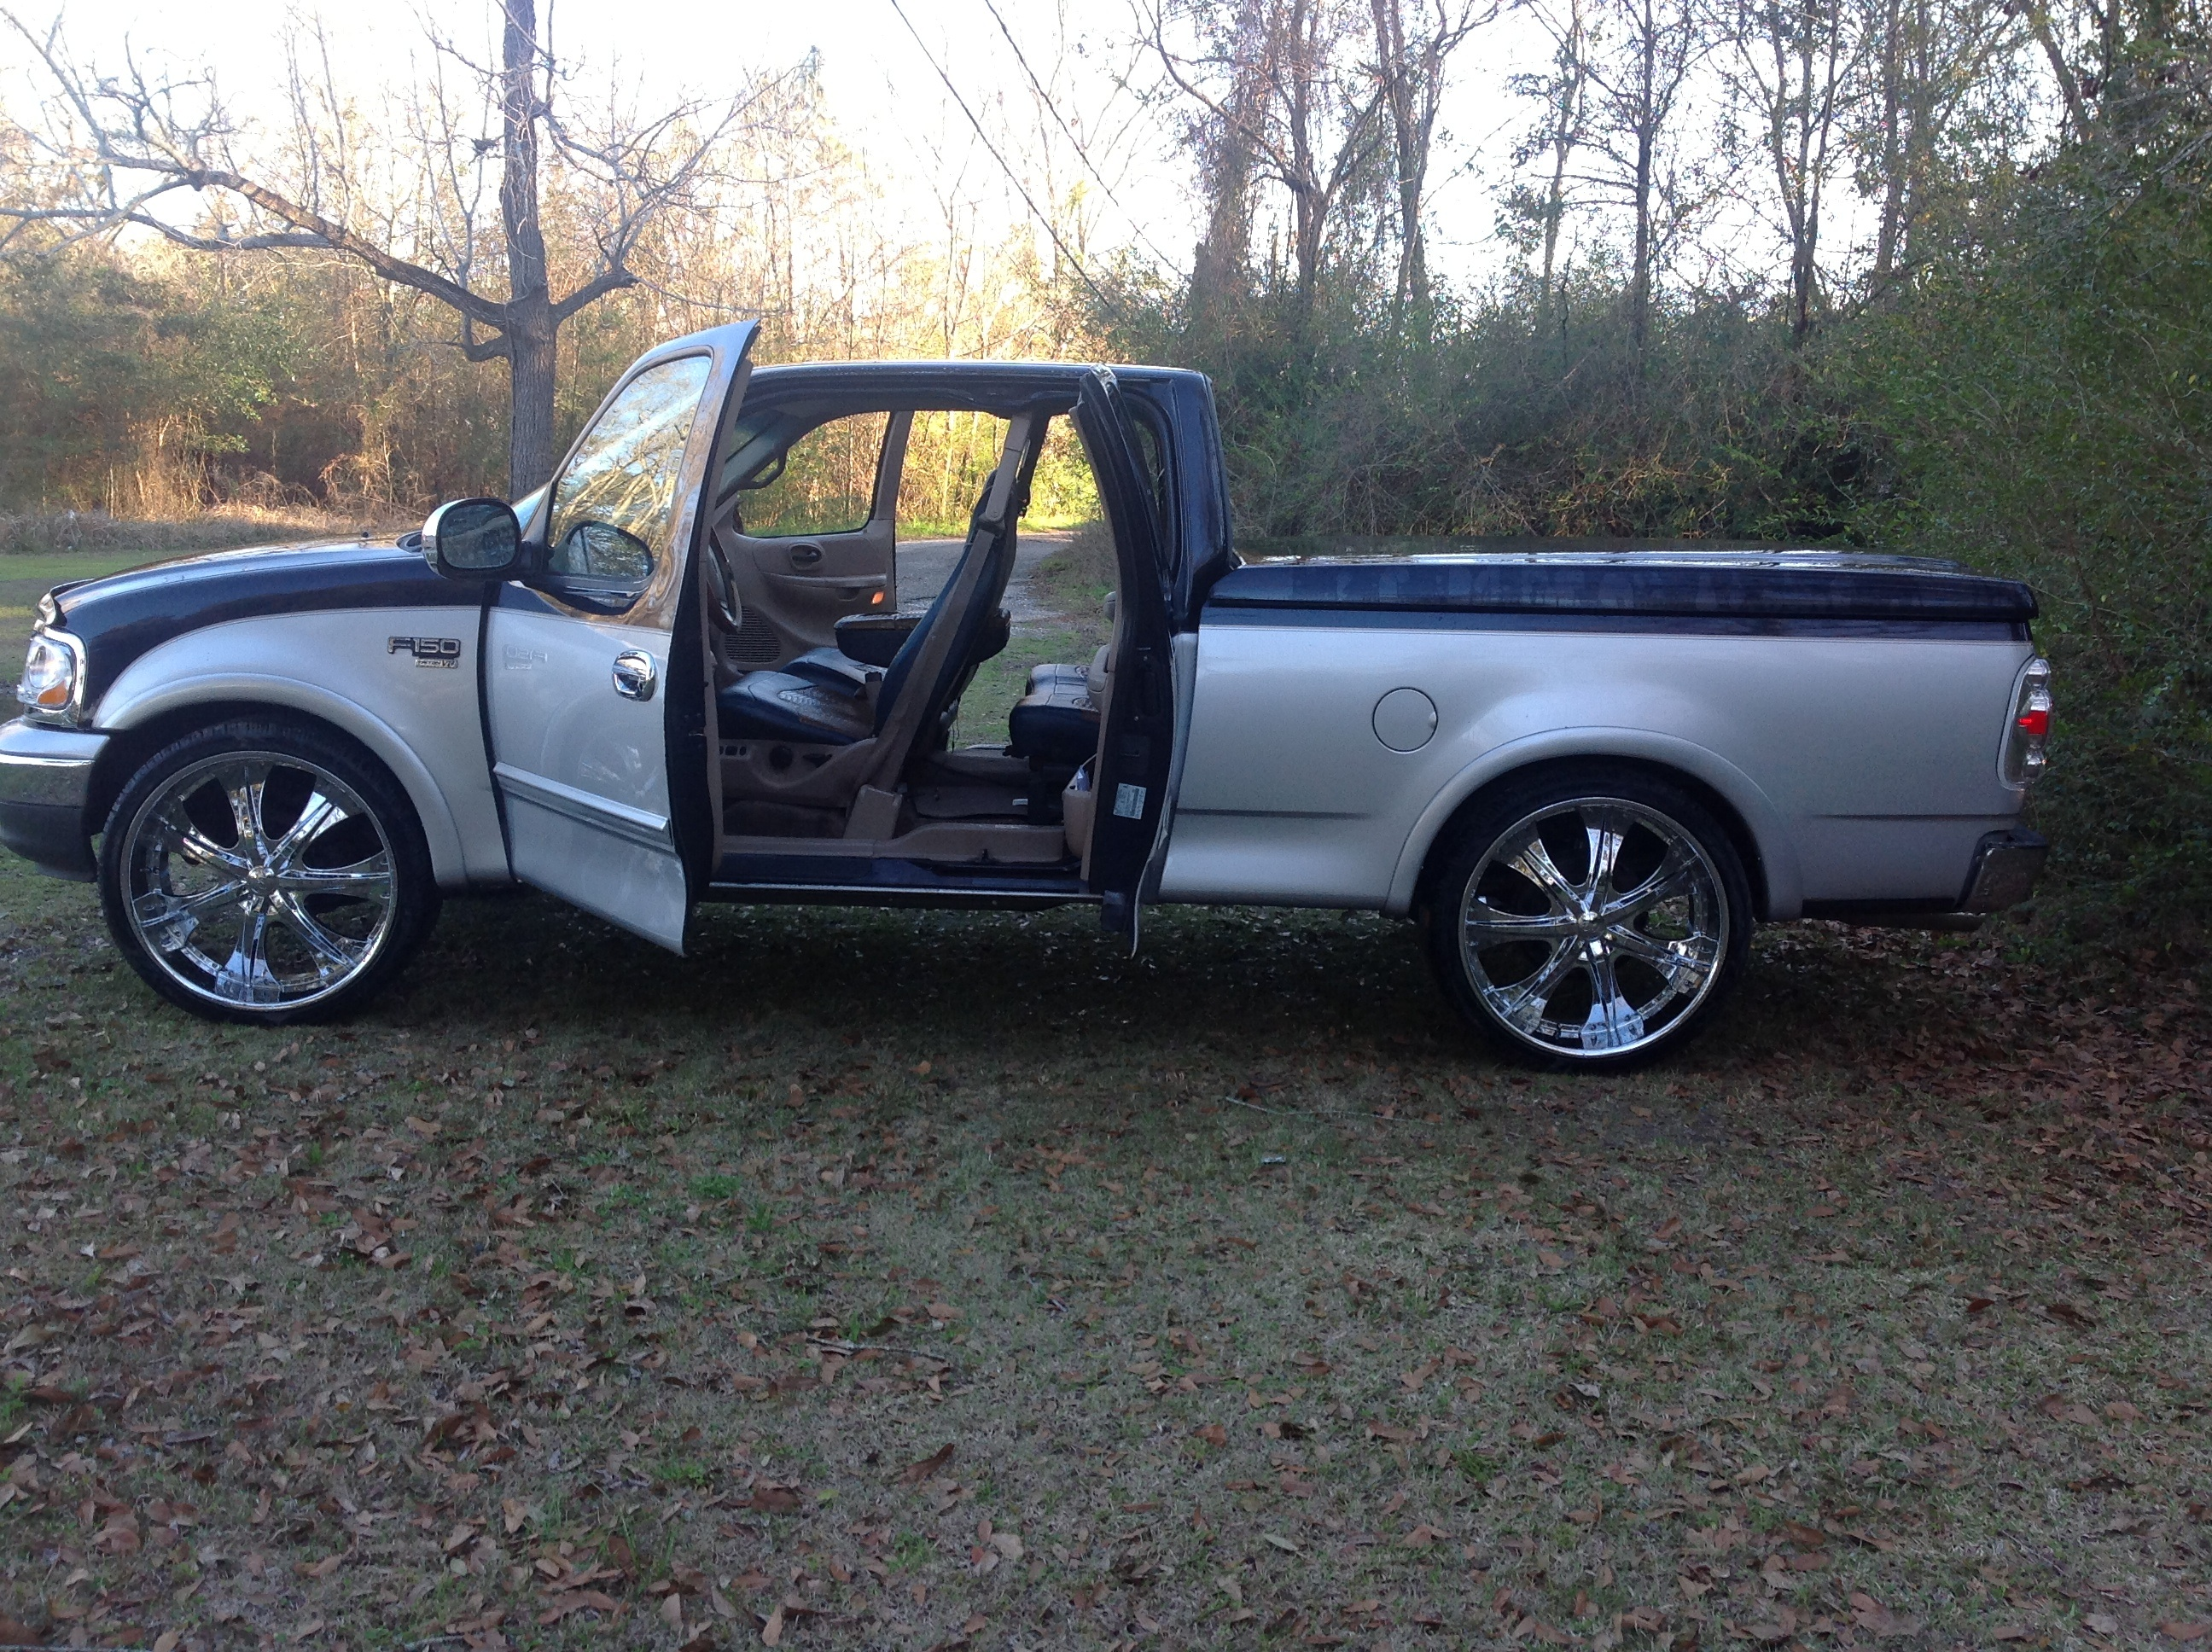 Iculooking 2000 ford f150 super cab - 19040124